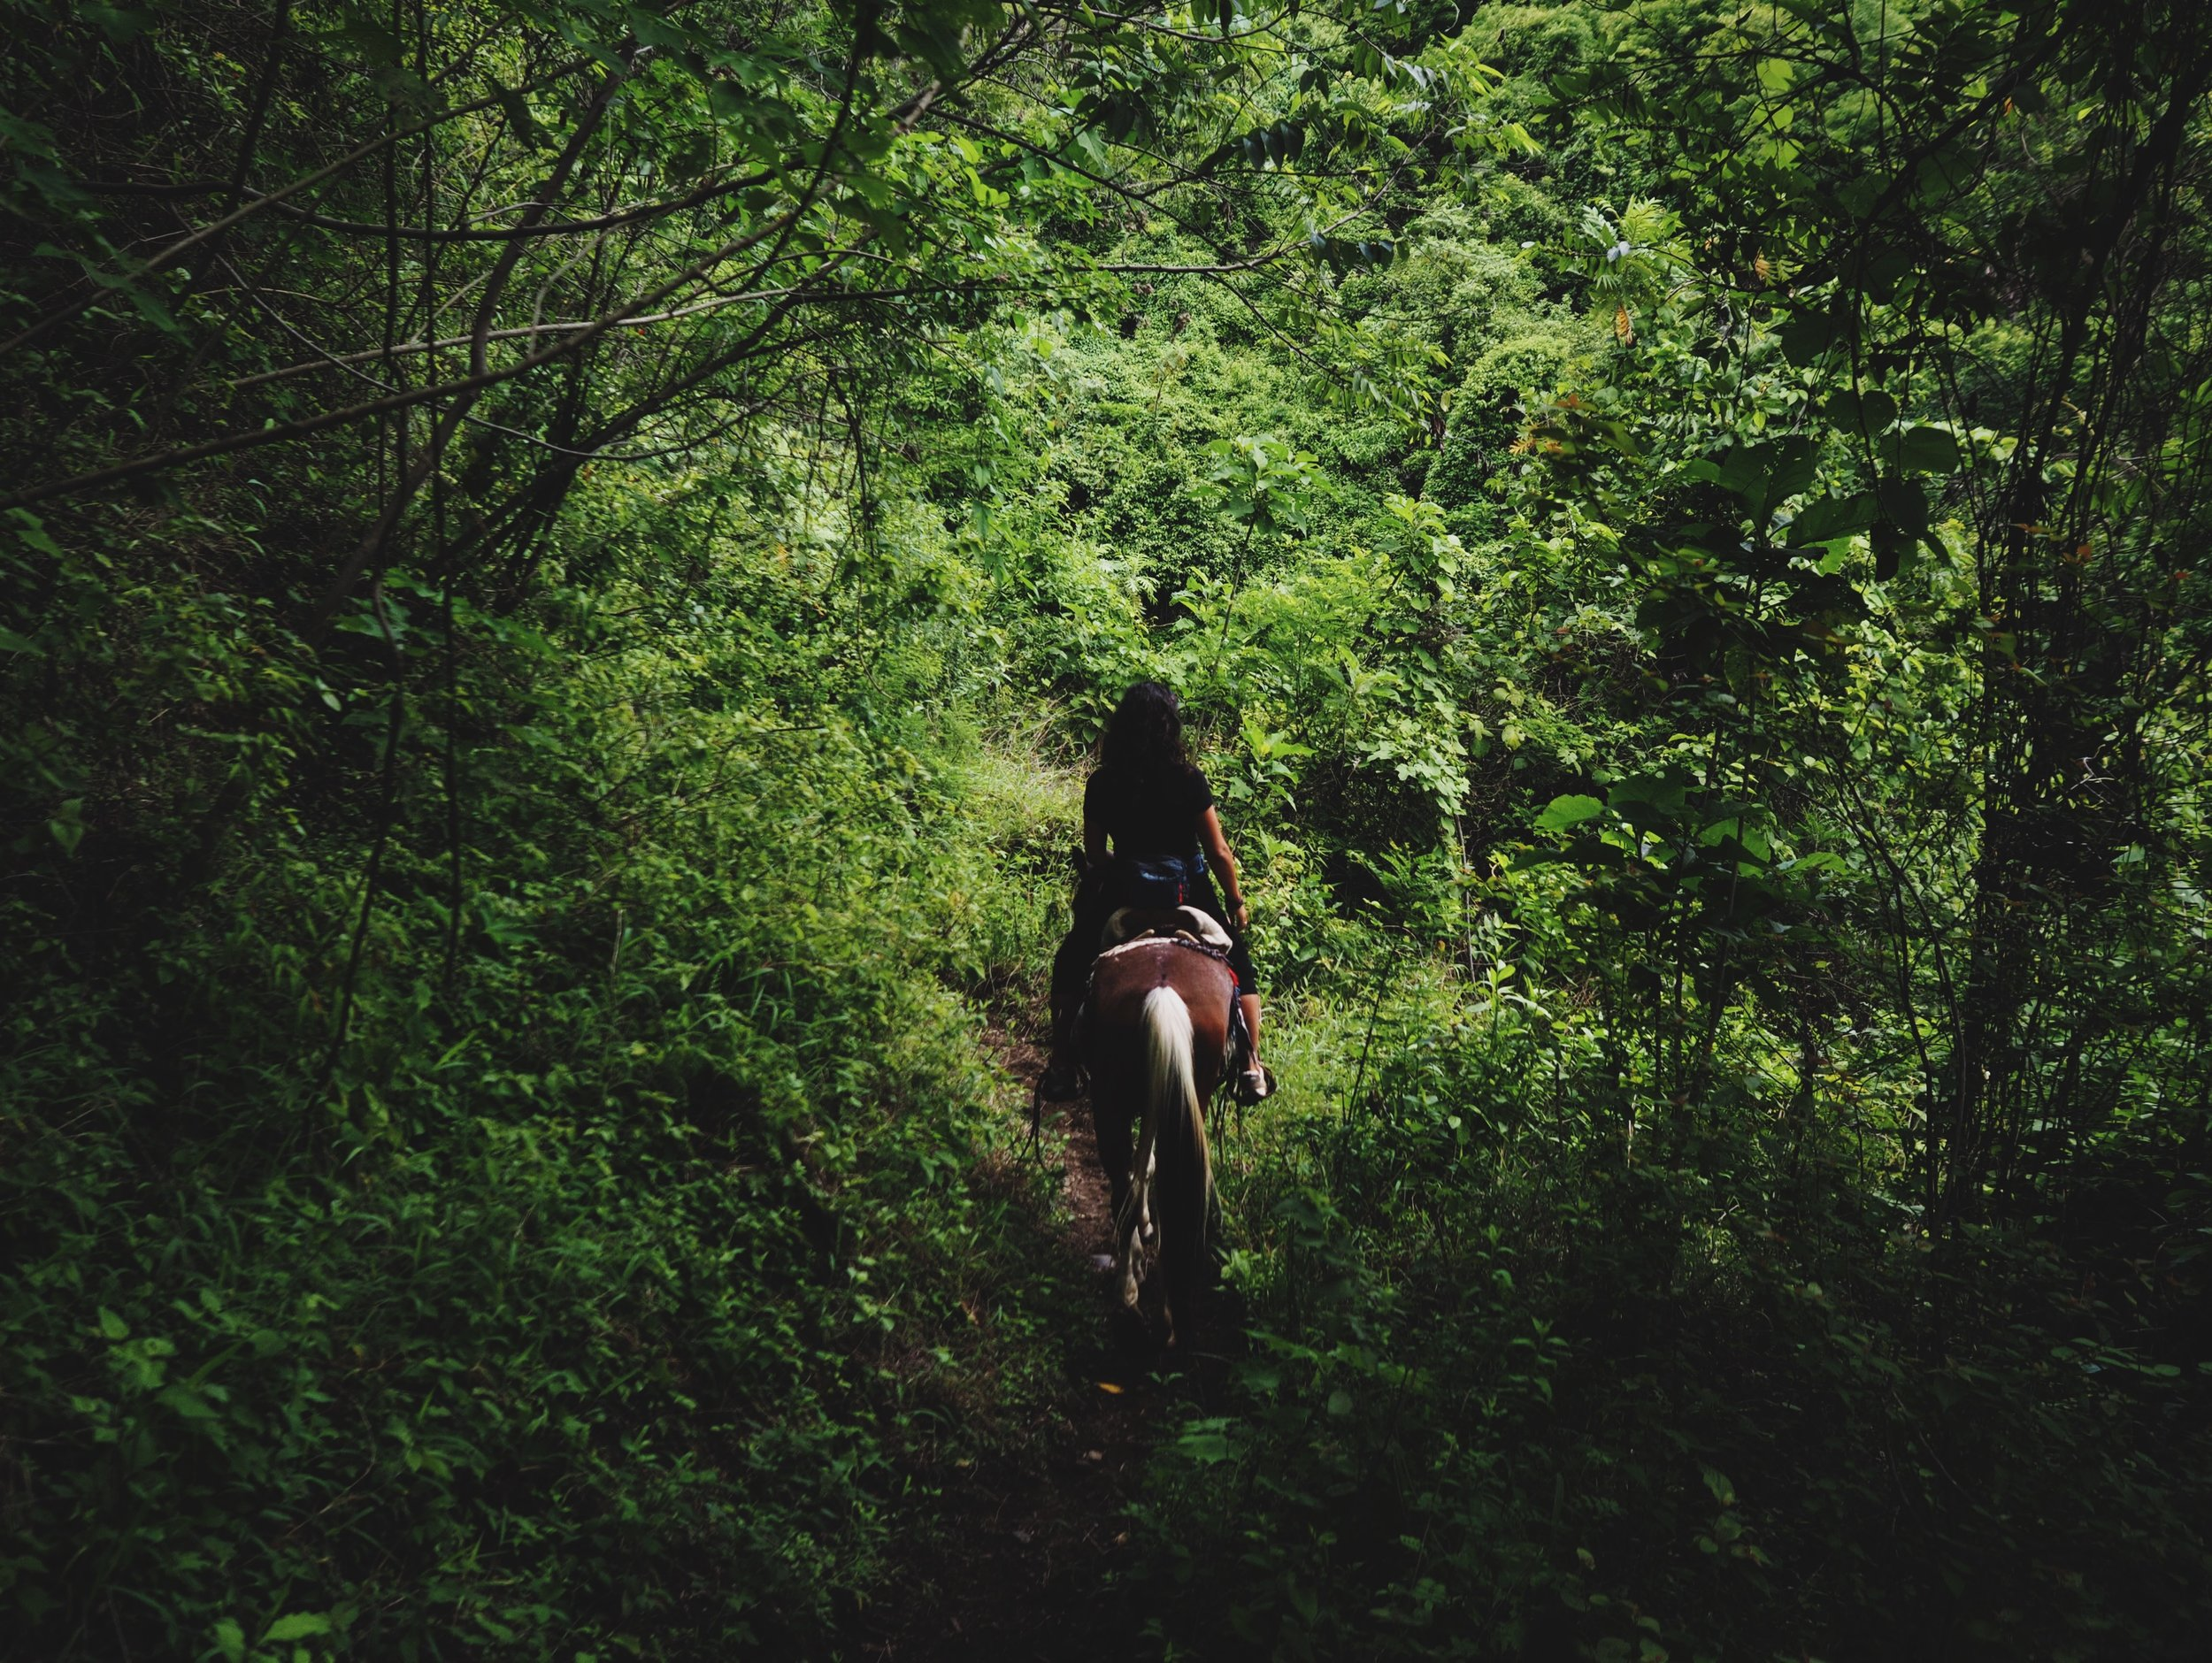 Horseback riding in the Mayan jungle has now been checked off our bucket lists